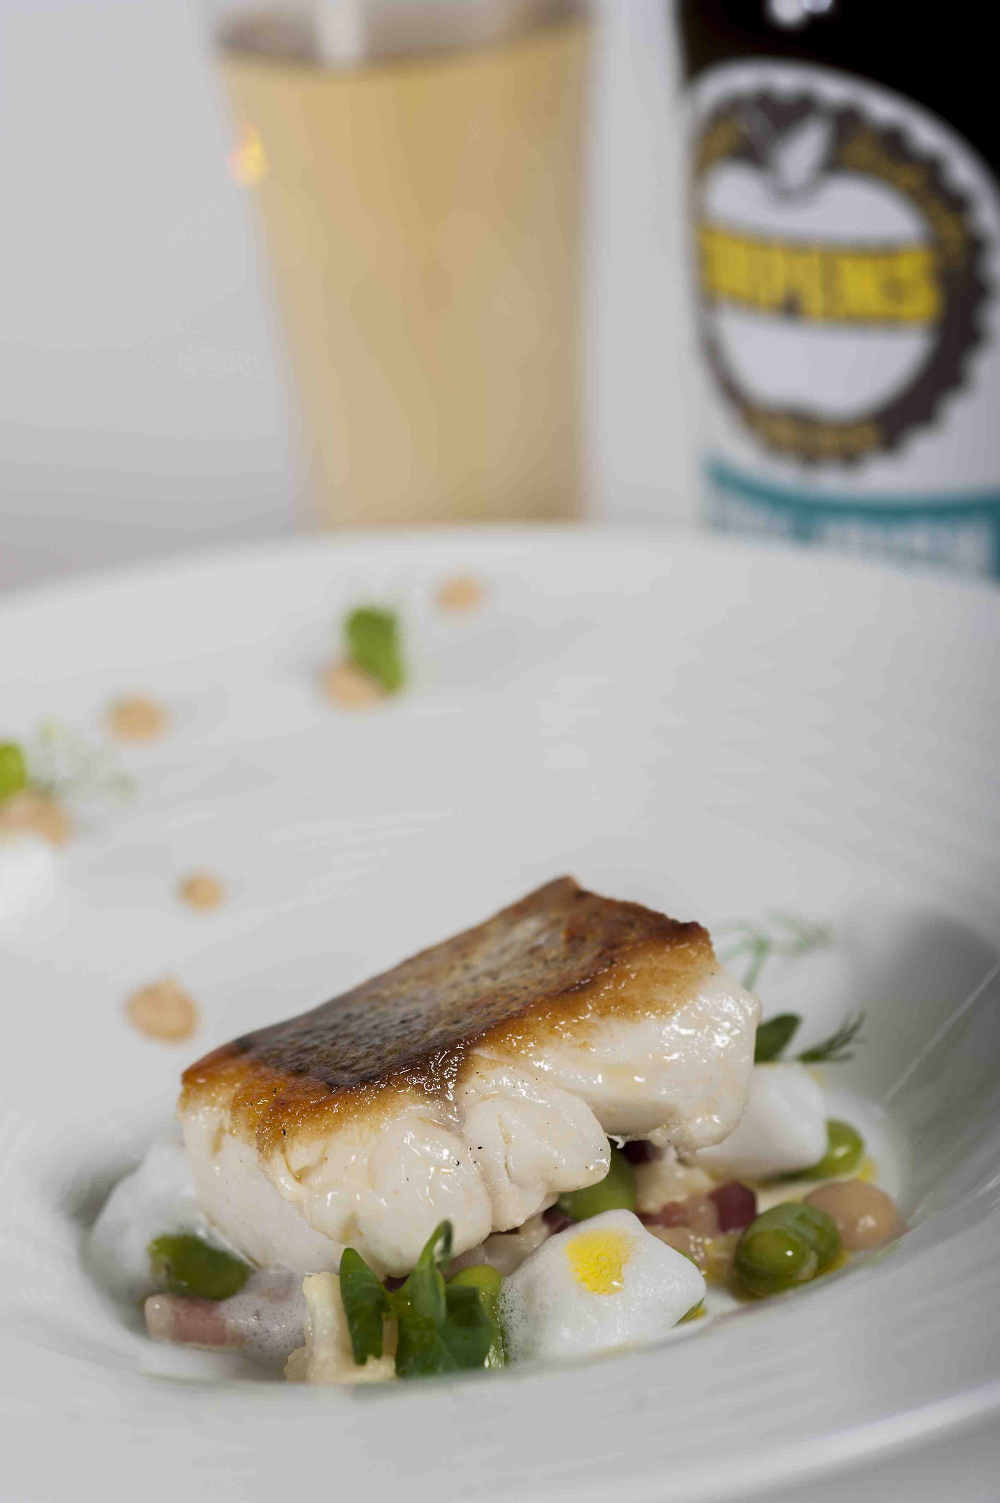 Noel McMeel's Pan Seared Fillet of Irish Hake, Roast Cauliflower Purée, Broad Beans, Bacon Lardons & Vanilla Foam